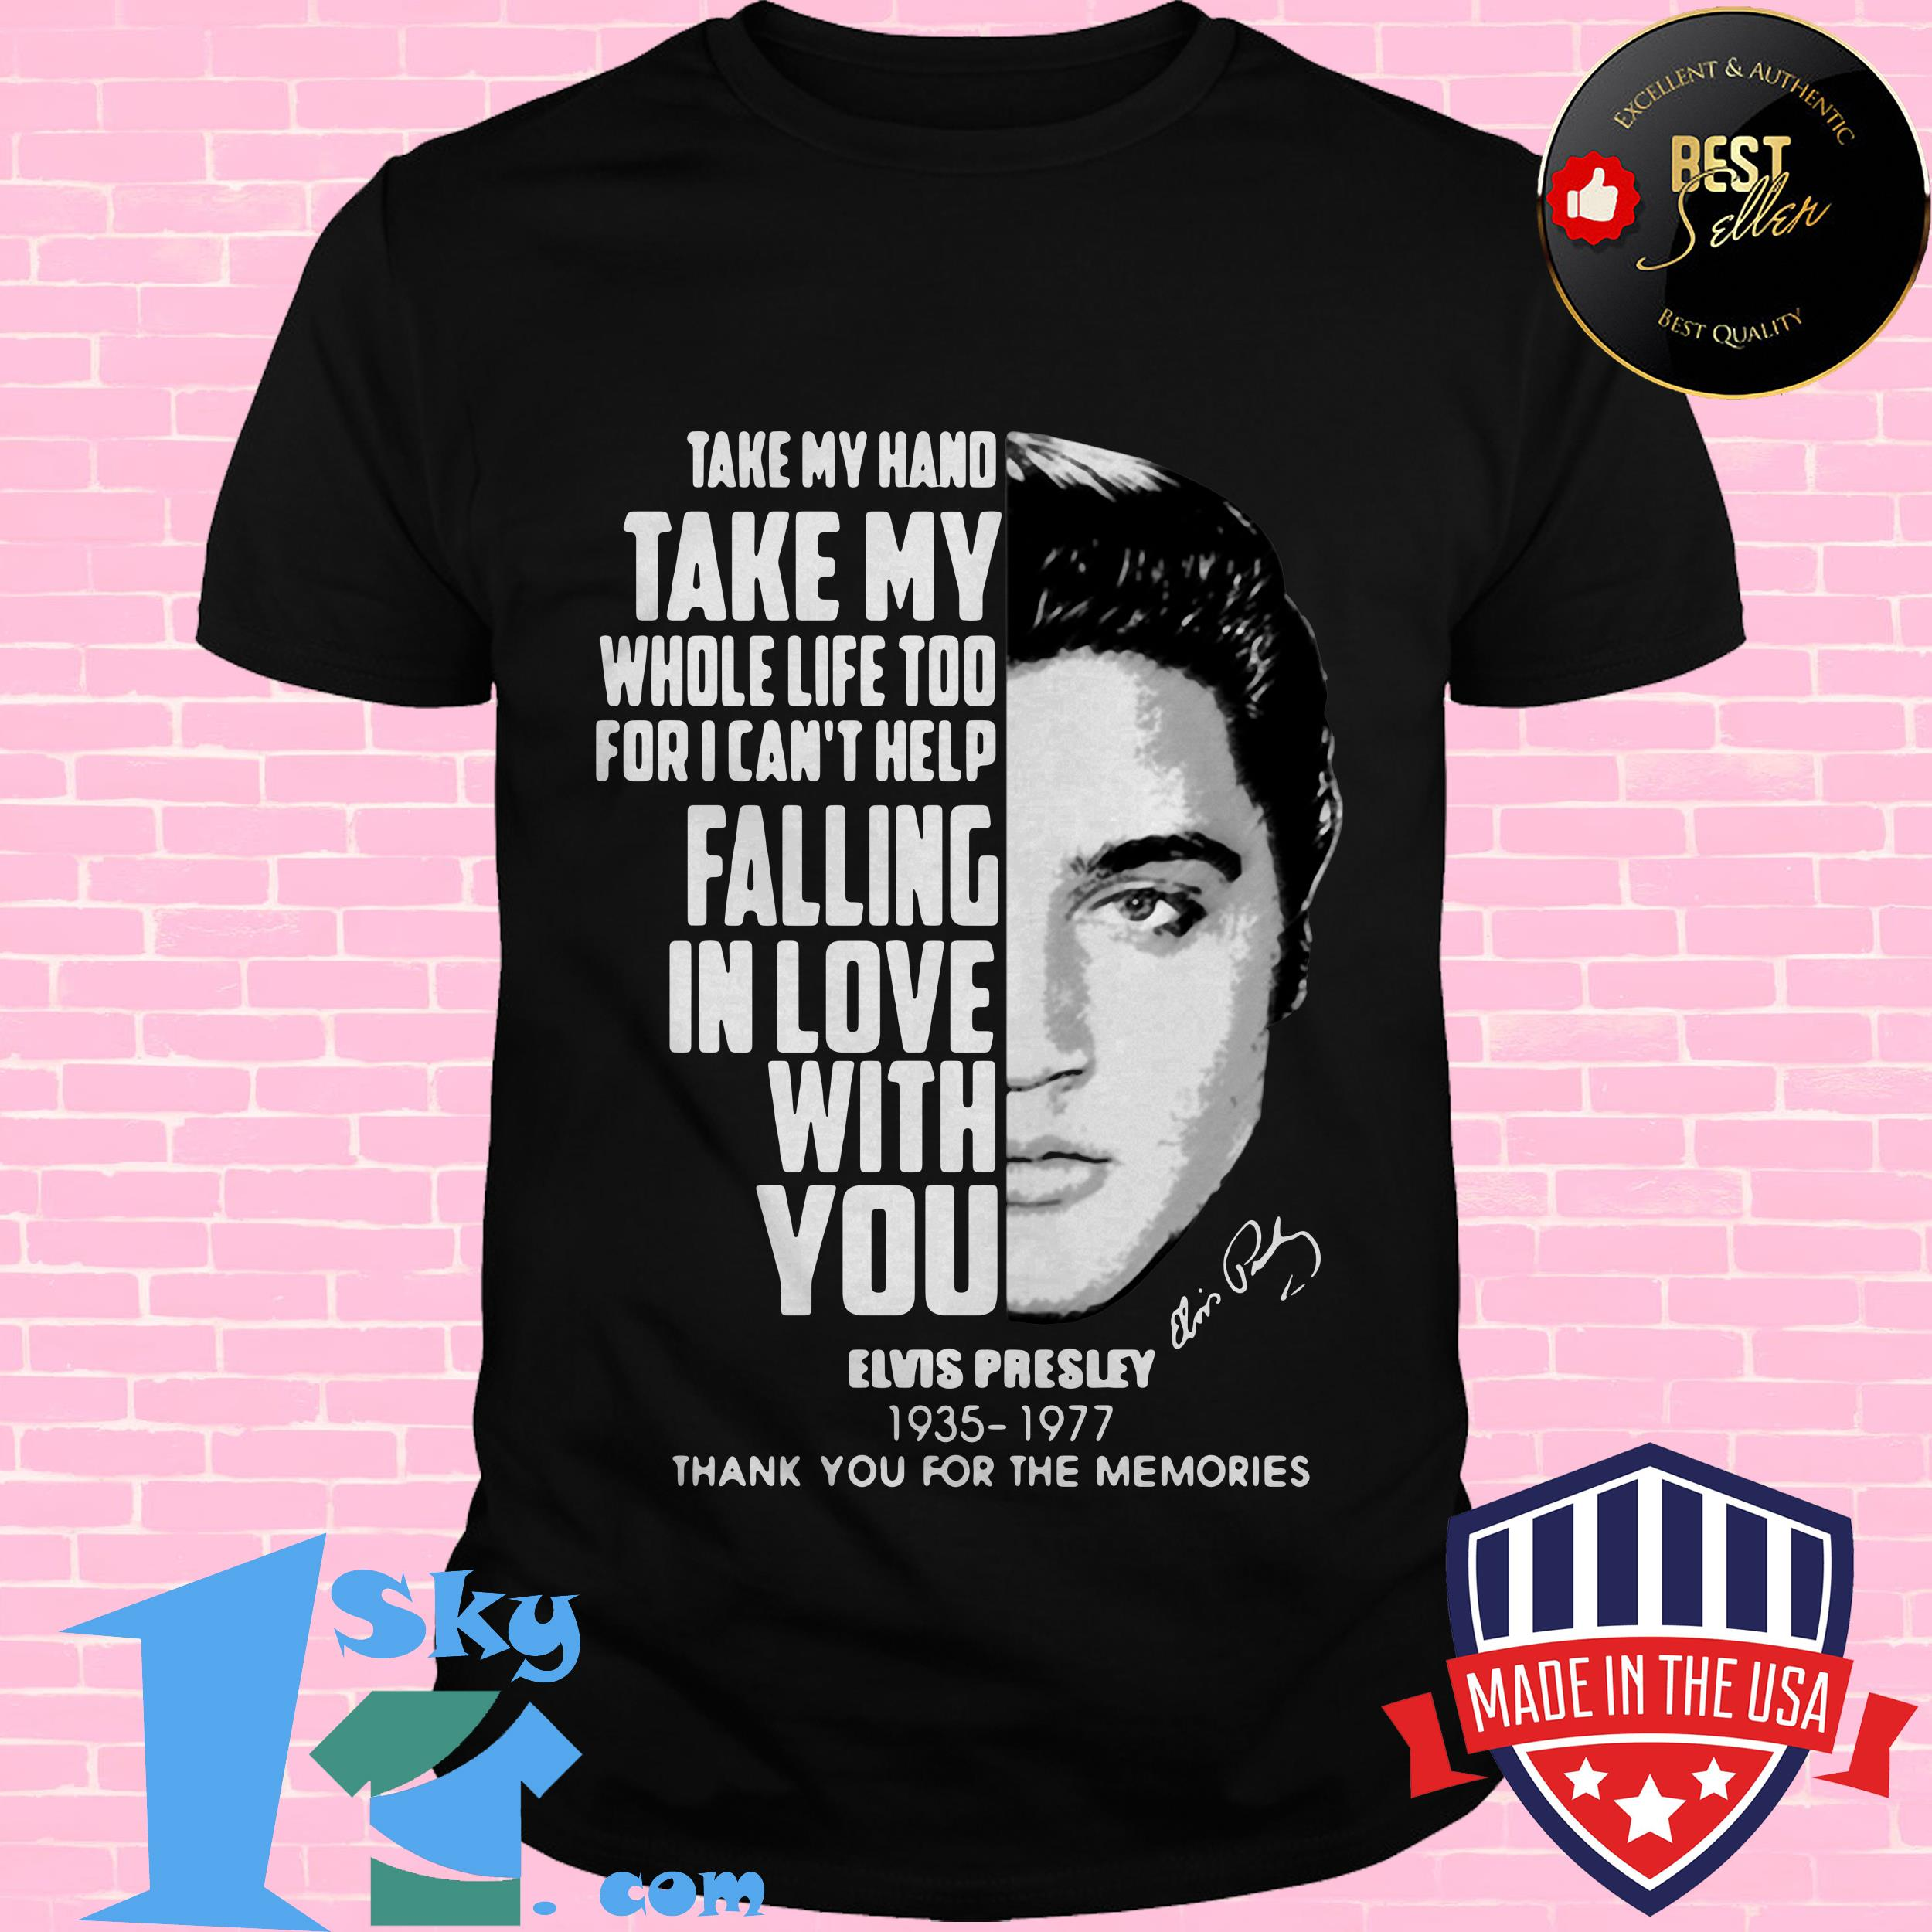 take my hand take my whole life too for i cant help fall in love with you elvis presley ladies tee - Take My Hand Take My Whole Life too for I Can't help Fall in Love with You Elvis Presley shirt